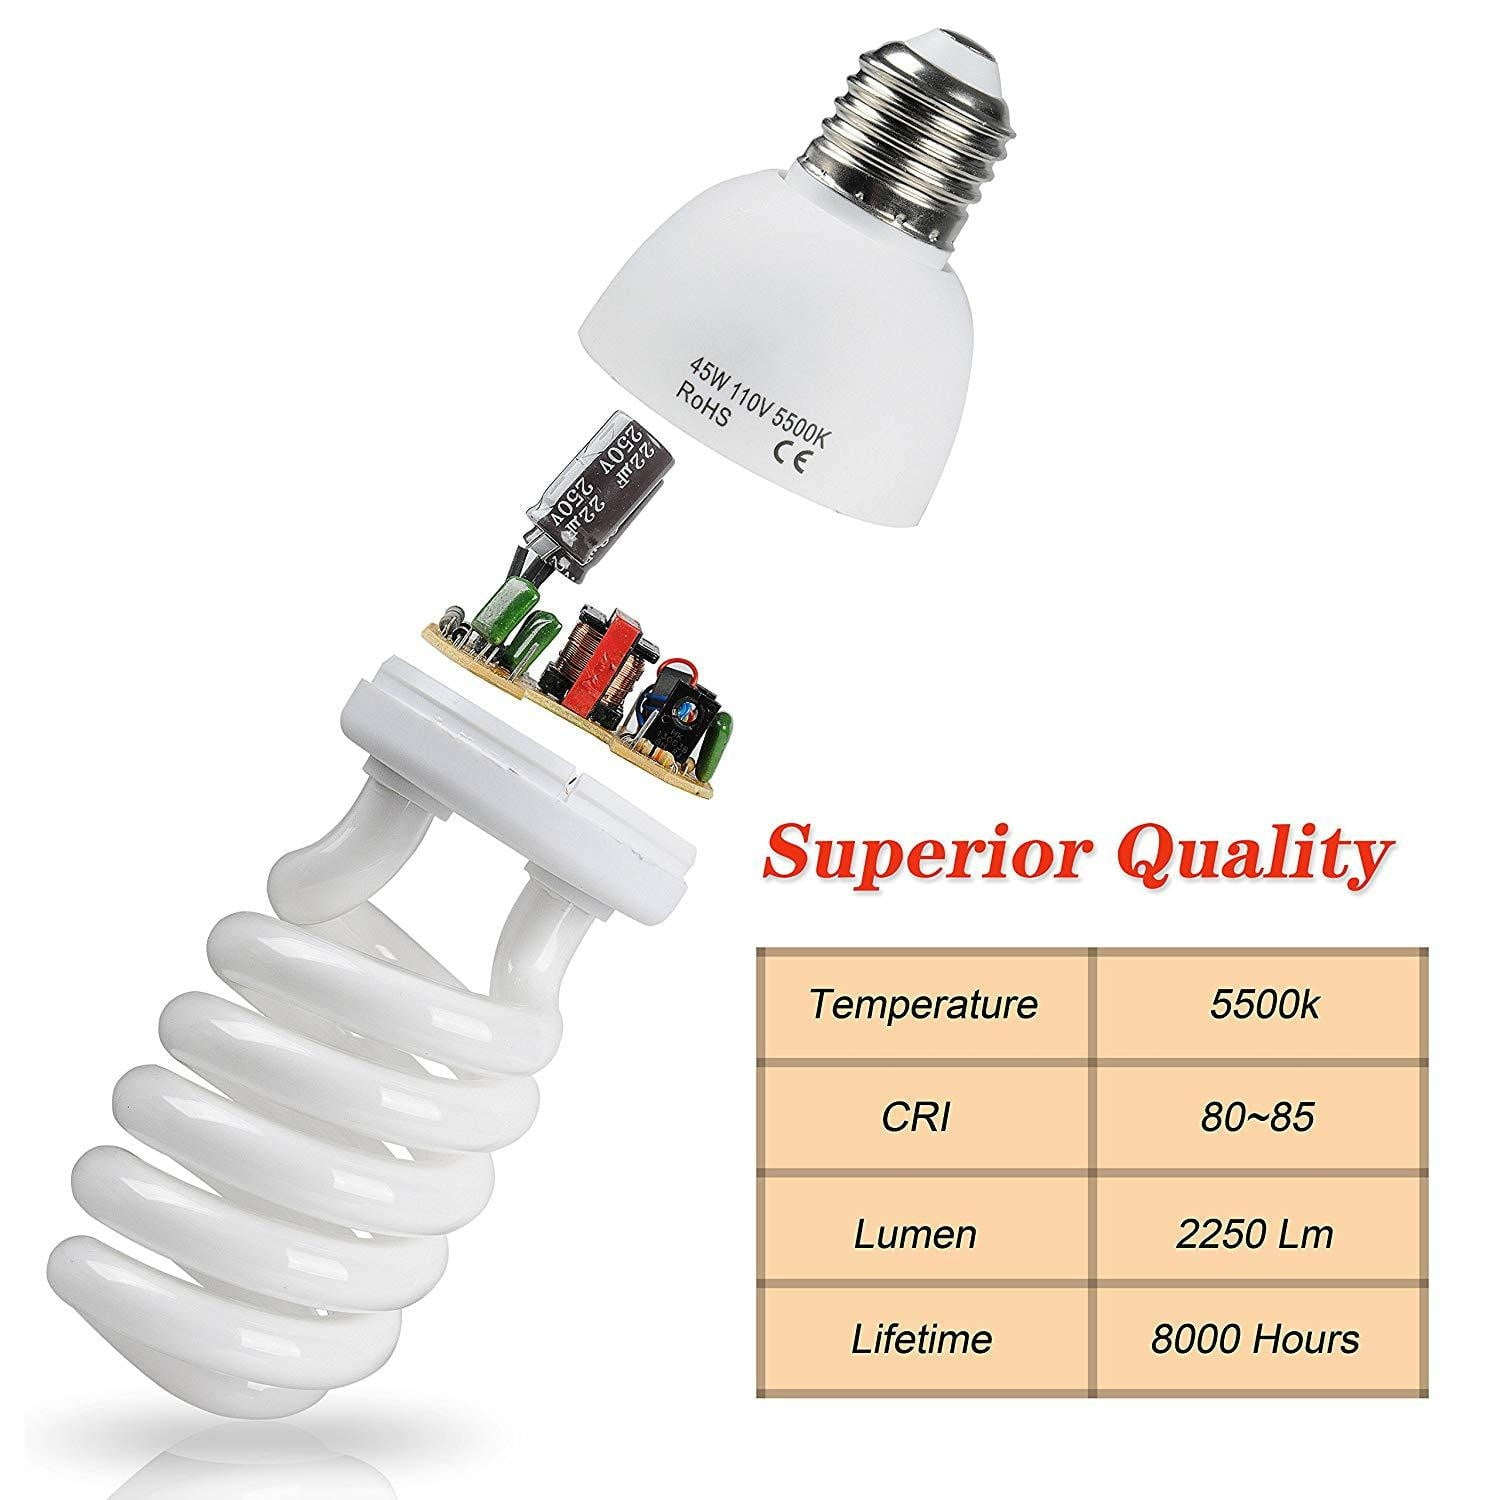 Emart Full Spectrum Light Bulb, 2 x 45W 5500K - EMART8